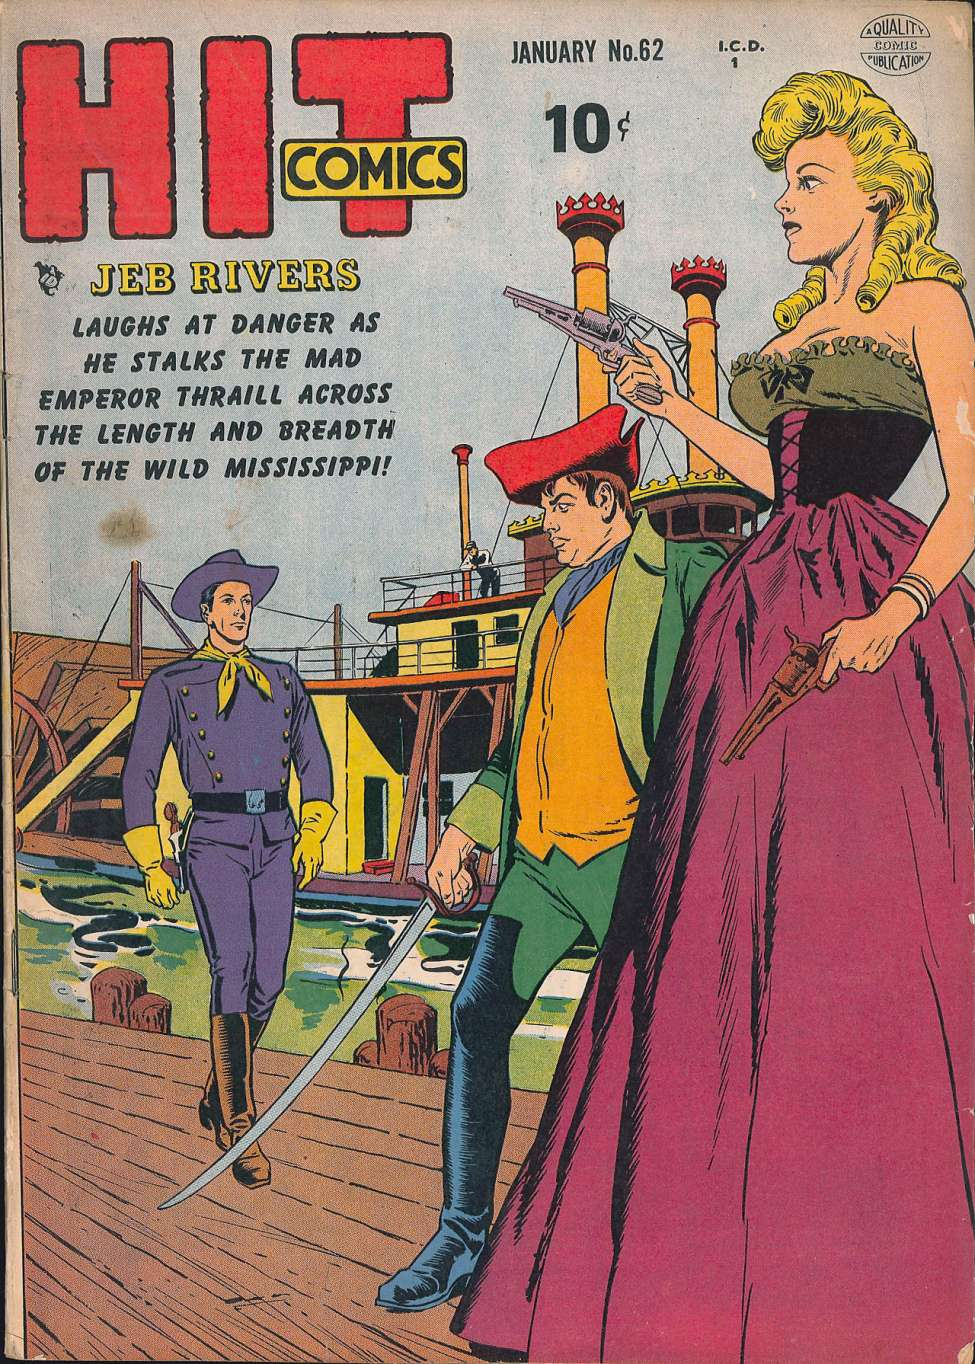 Comic Book Cover For Hit Comics #62